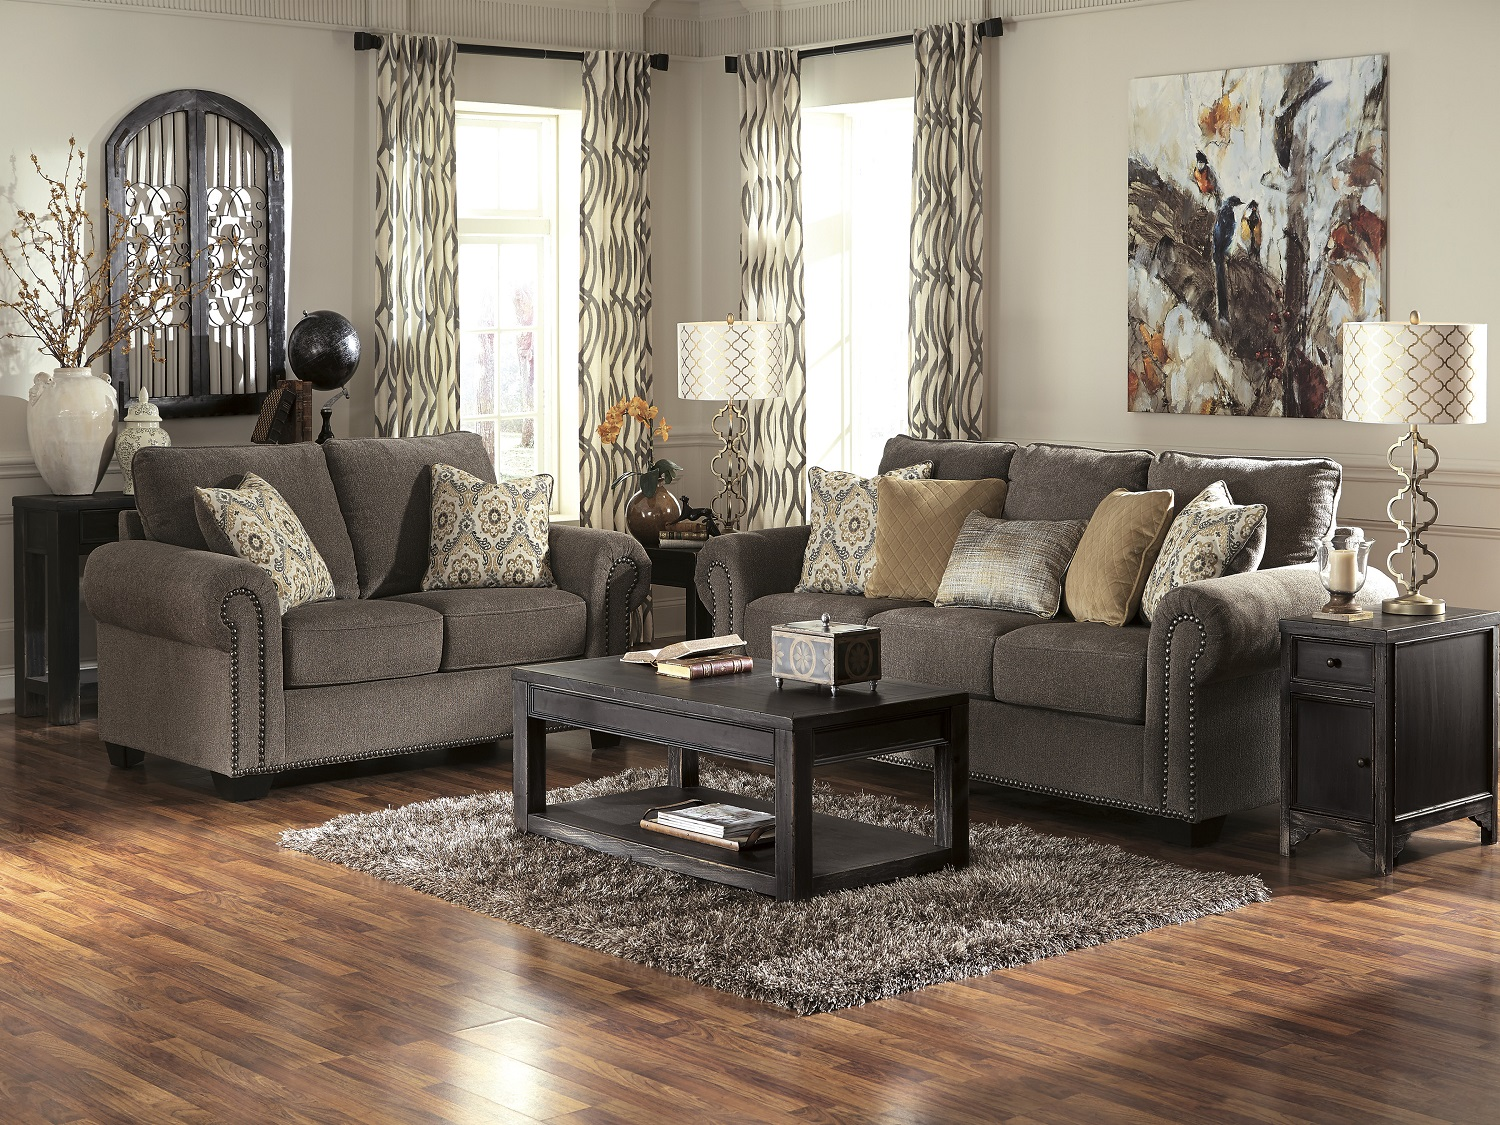 Emelen Sofa Only, 456, Sofa Sets by Midha Furniture to Brampton, Mississauga, Etobicoke, Toronto, Scraborough, Caledon, Oakville, Markham, Ajax, Pickering, Oshawa, Richmondhill, Kitchener, Hamilton and GTA area